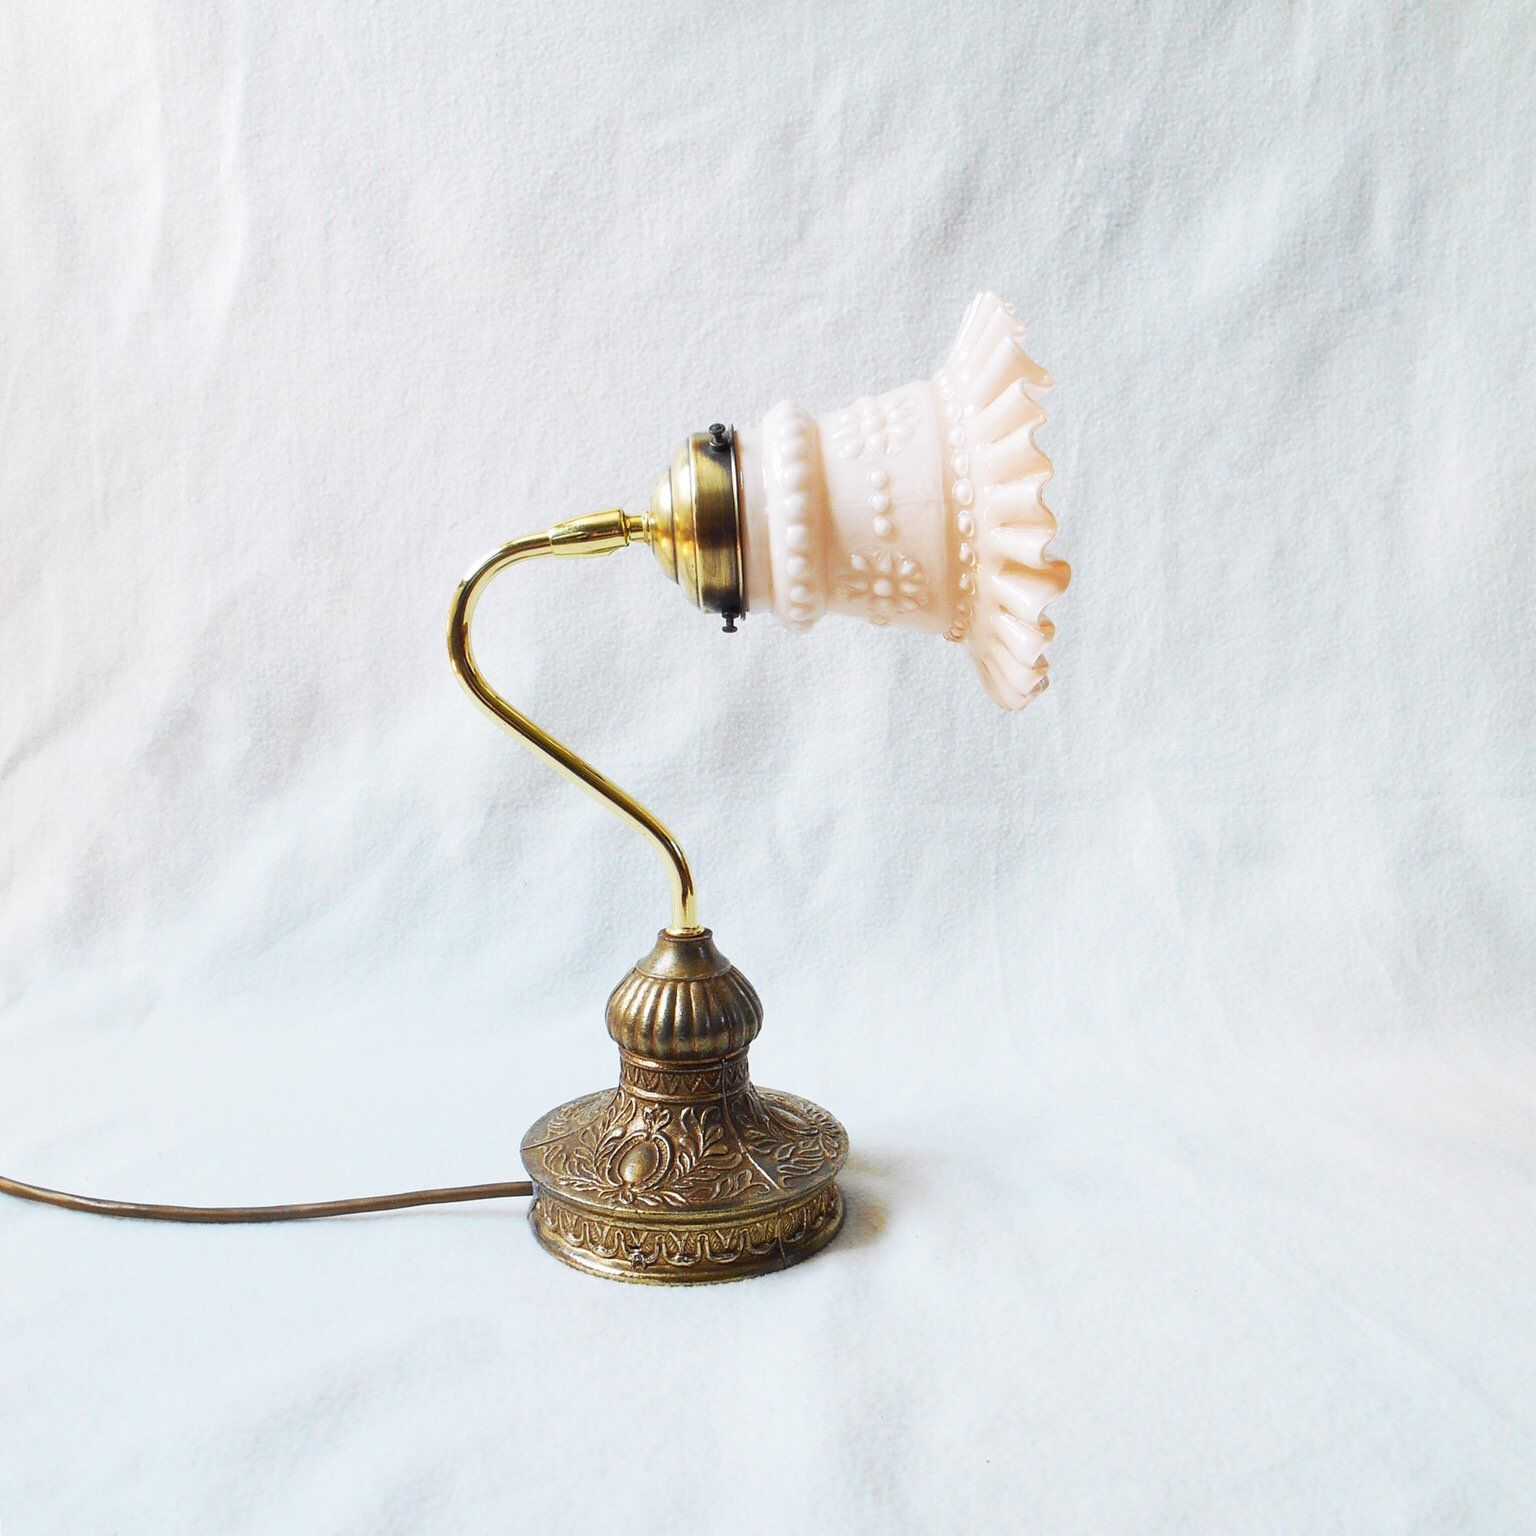 1930s Vintage Glass And Brass Table Lamp Brass Table Lamps Brass Table Lamp